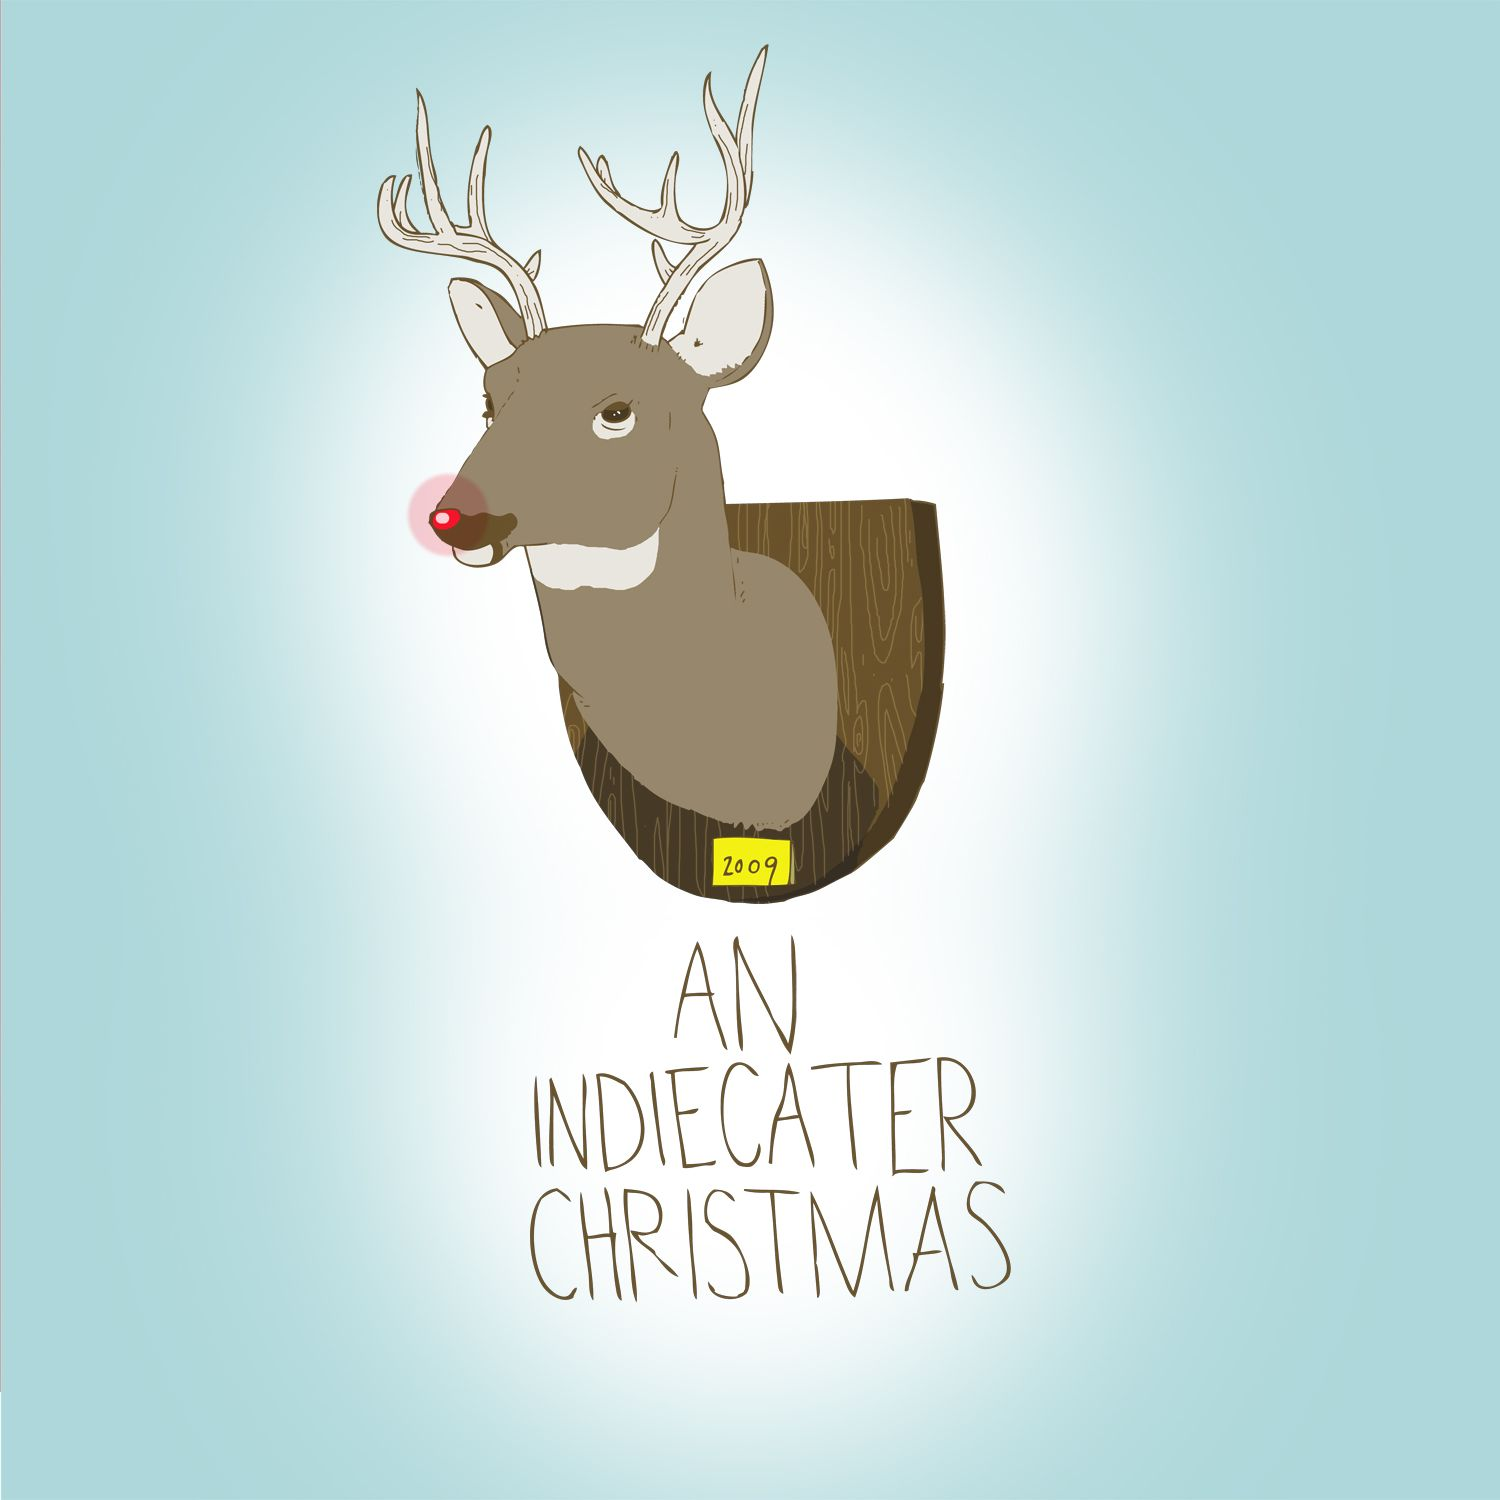 An Indiecater Christmas 2009 – Indiecater Records